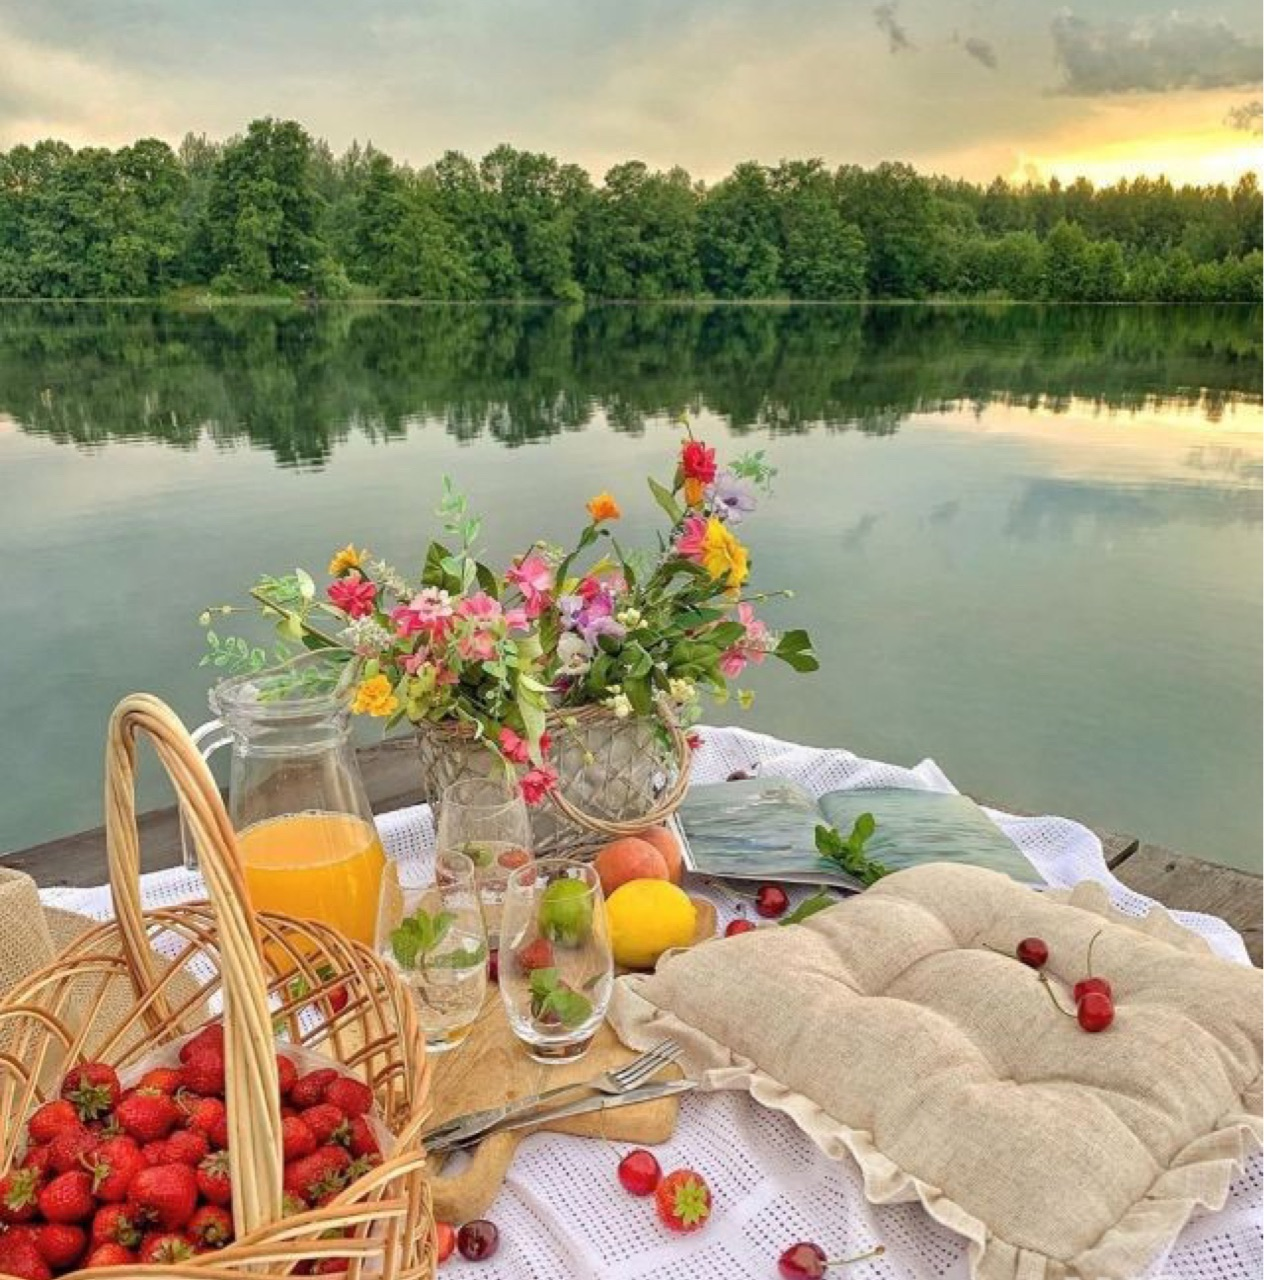 aesthetic, food, and nature image